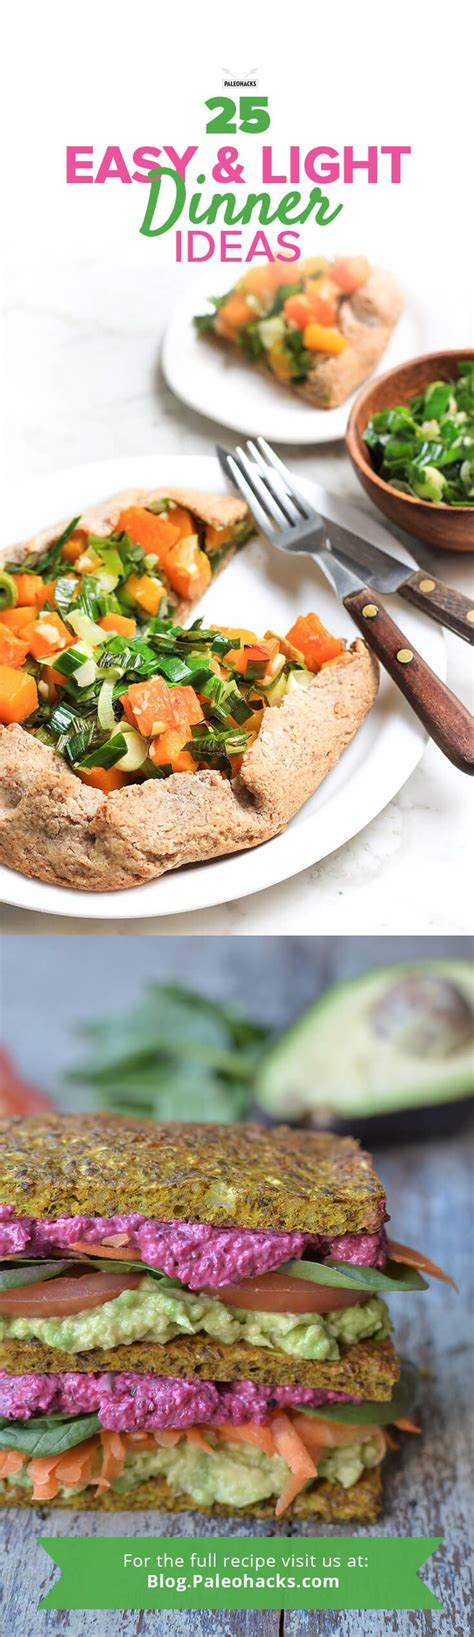 easy light dinner ideas 675 best images about recipe ups buzz from the web